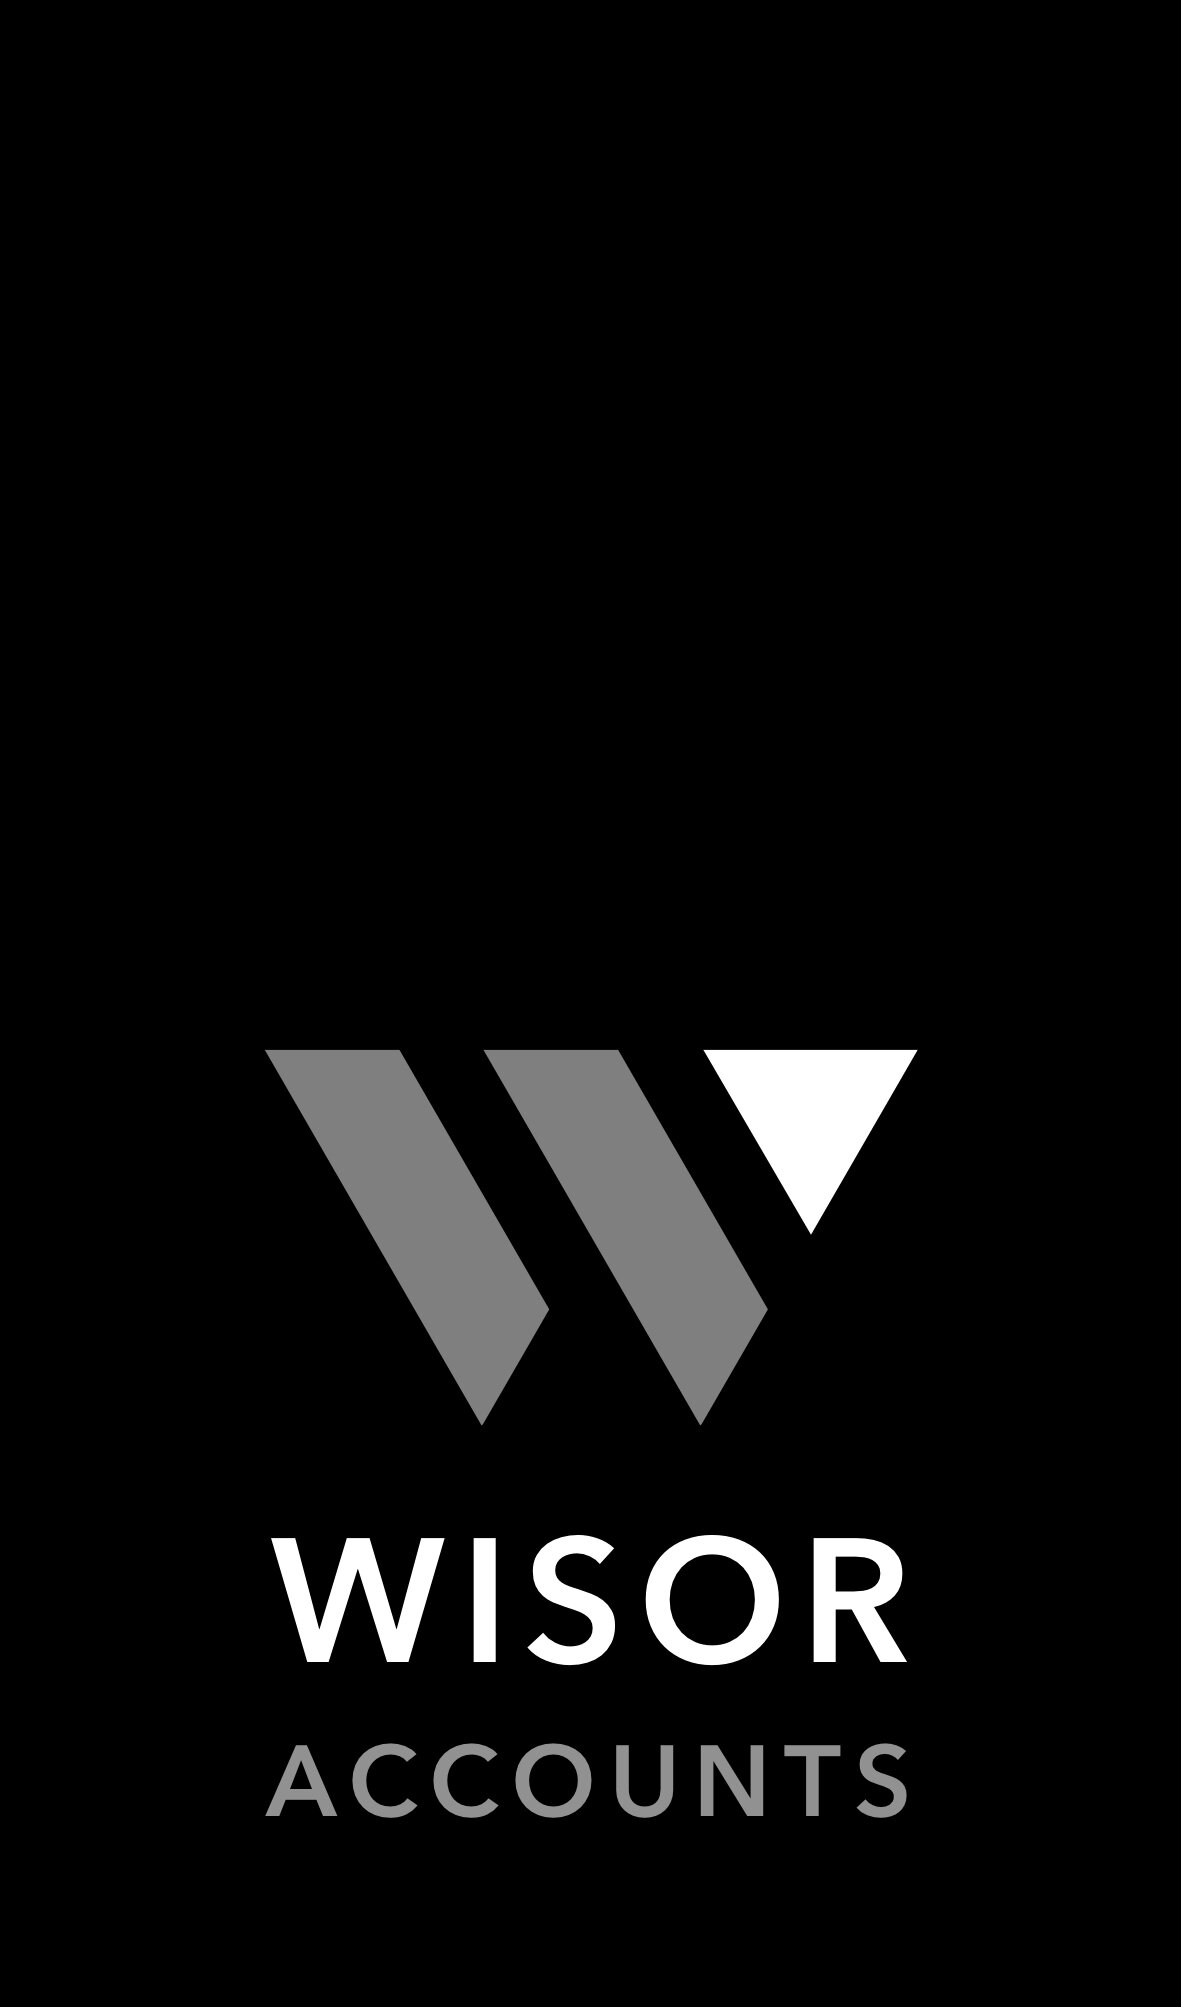 Wisor Accounts Document Logo.jpg  For download click on image.